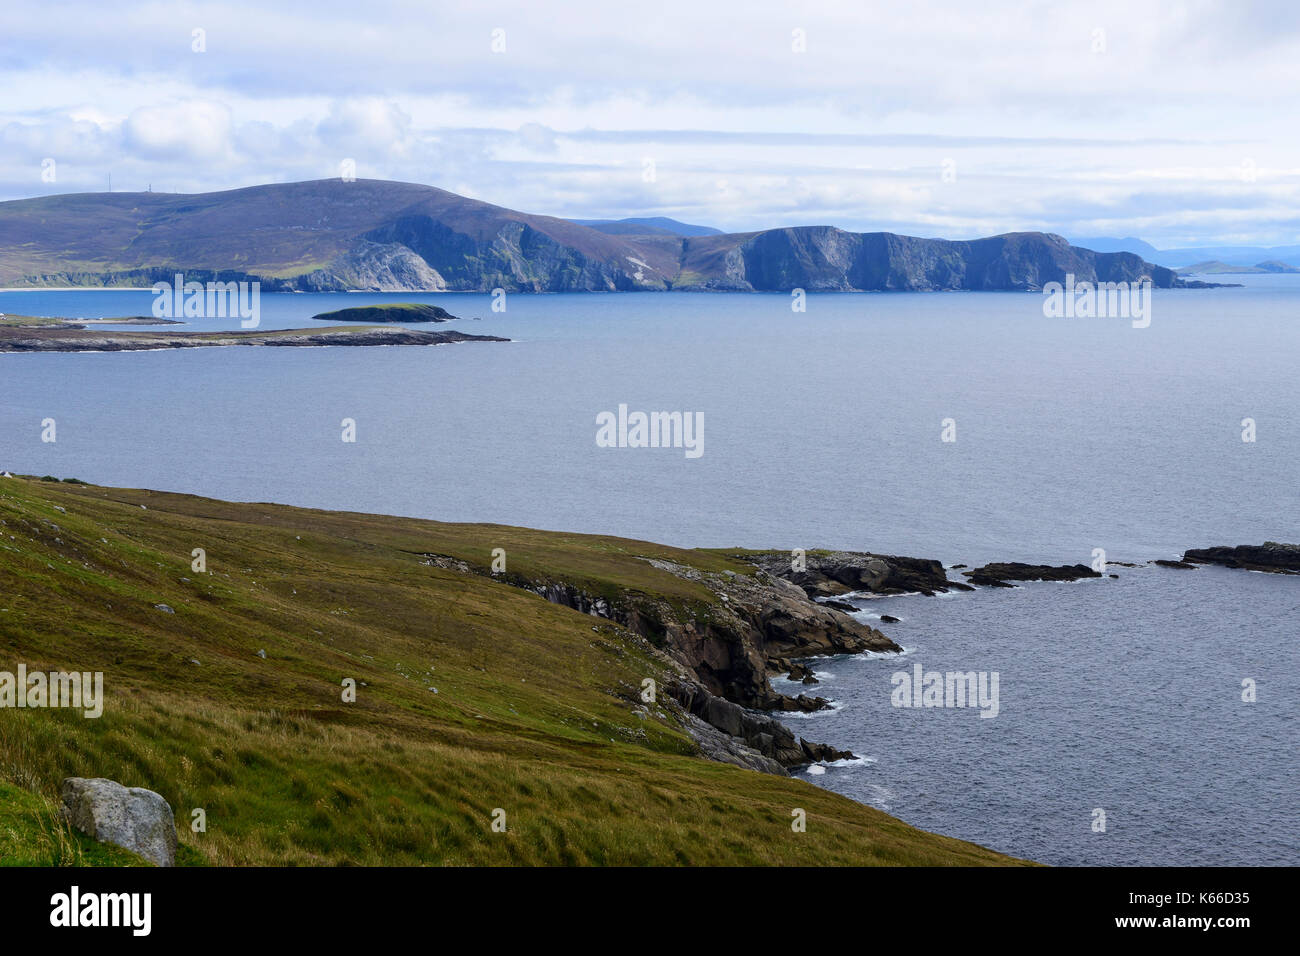 Rugged coastline at Keem Bay on Achill Island, County Mayo, Republic of Ireland - Stock Image